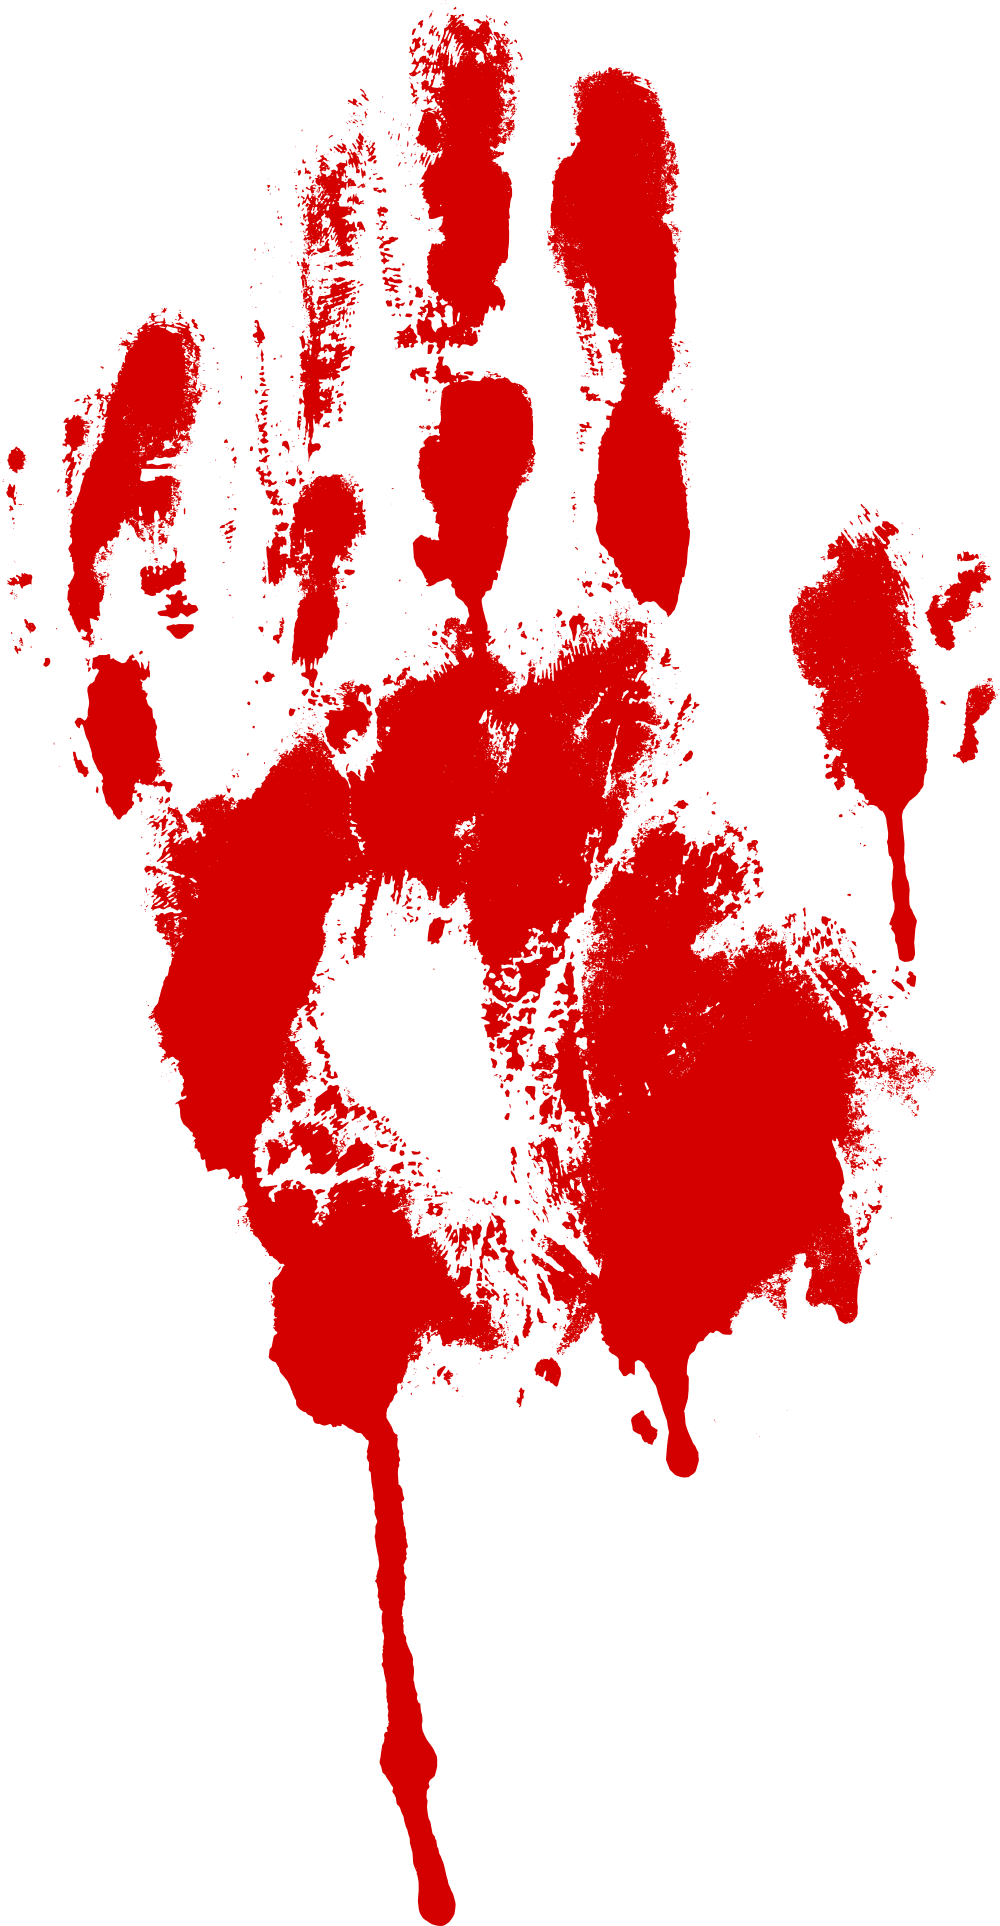 bloody png onlygfx. Handprint transparent red picture transparent download